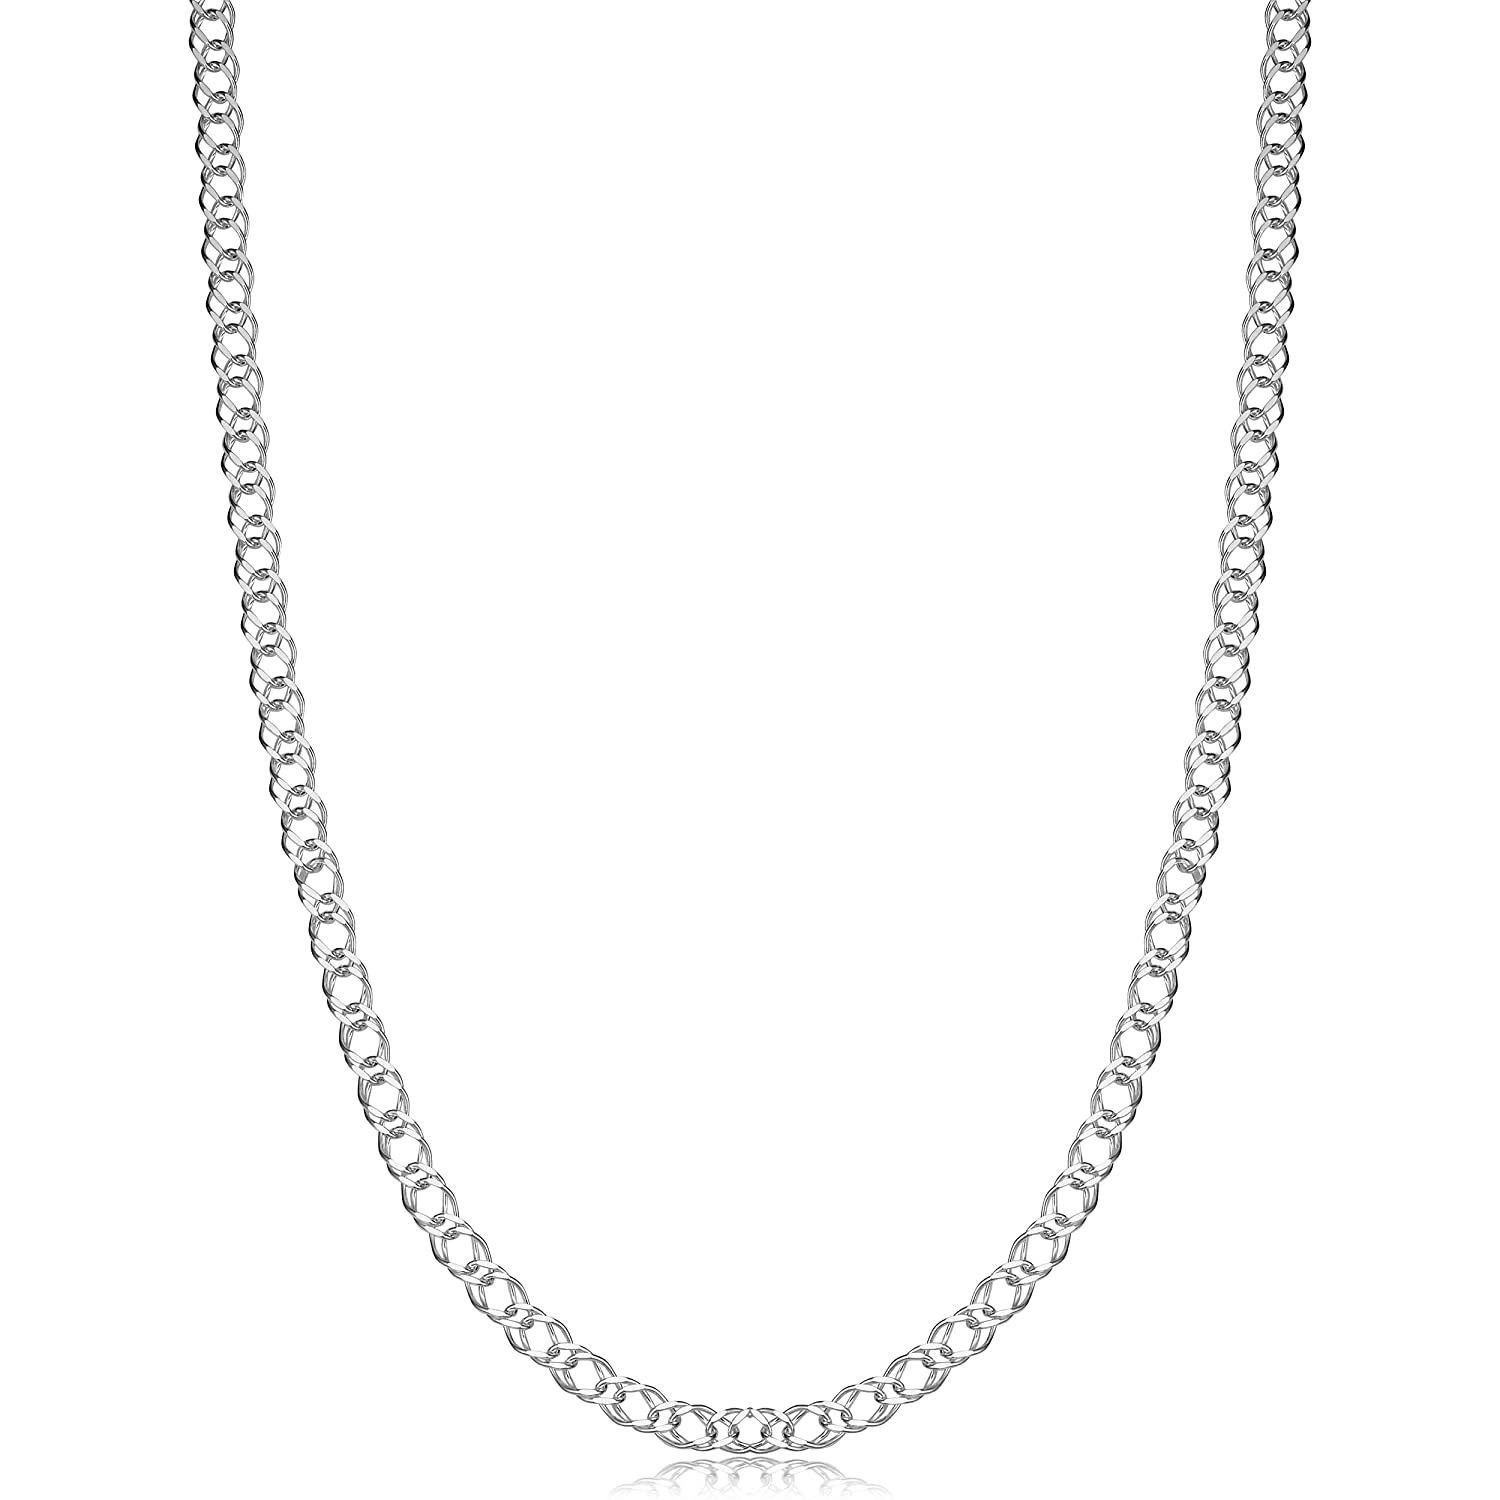 d14a3b83f594b Kooljewelry Sterling Silver 2.8 mm Double Curb Link Necklace (16, 18, 20,  22, 24, 30 or 36 inch)